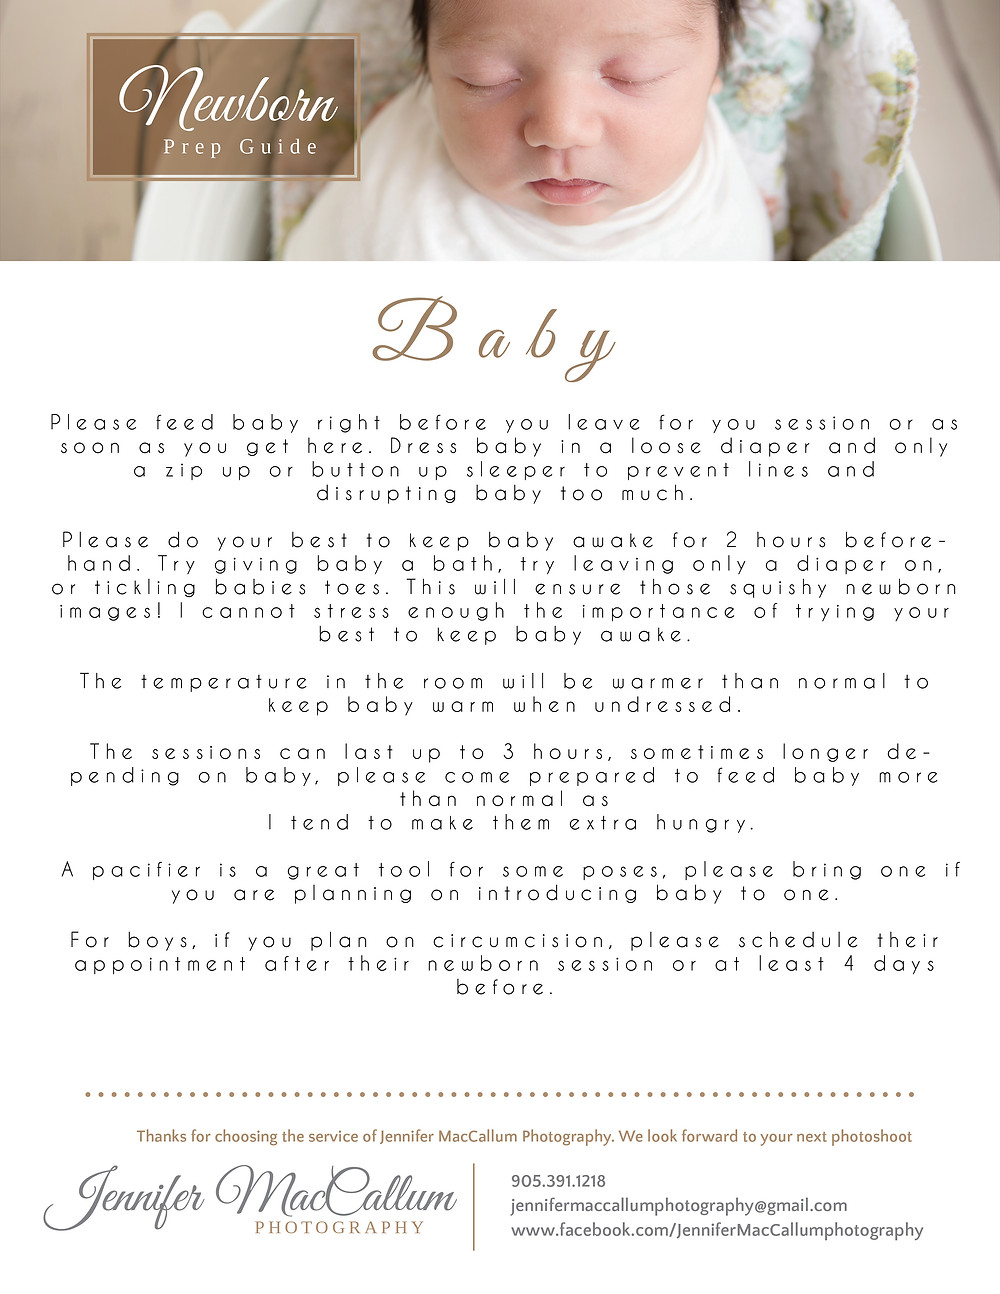 Prep guide for newborn photography session